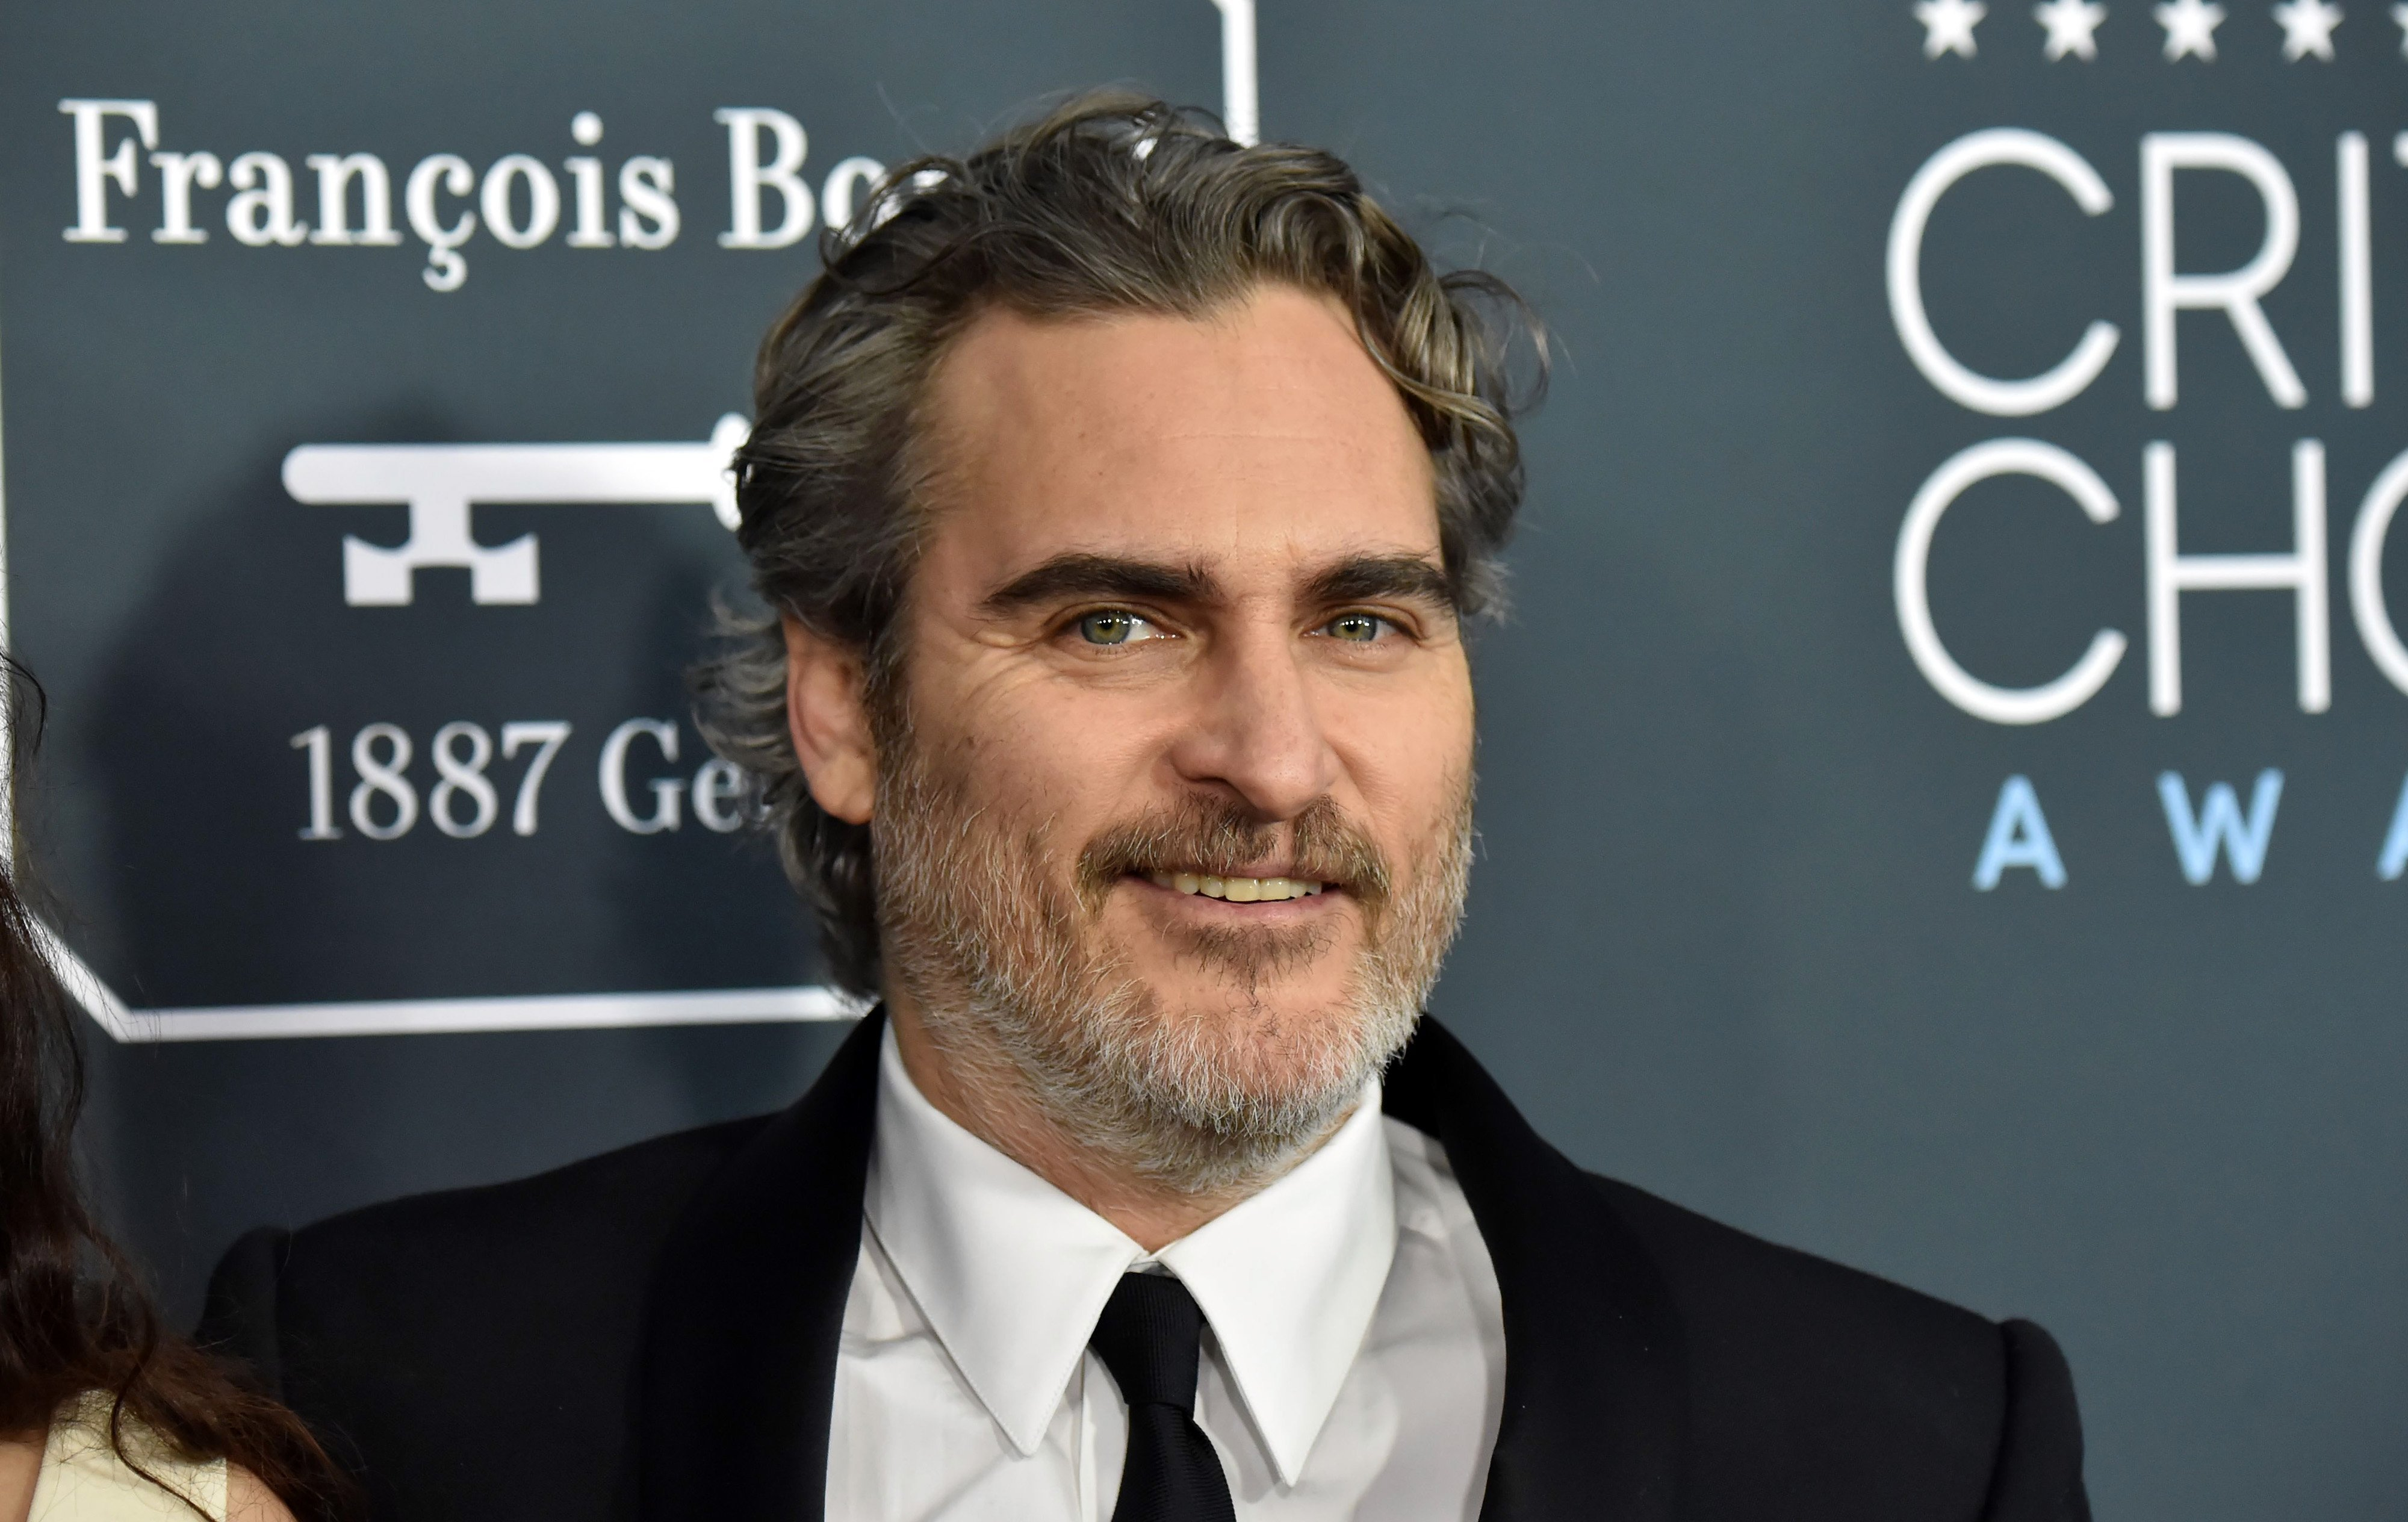 Joaquin Phoenix attends the 25th Annual Critics' Choice Awards at Barker Hangar on January 12, 2020 | Photo: GettyImages